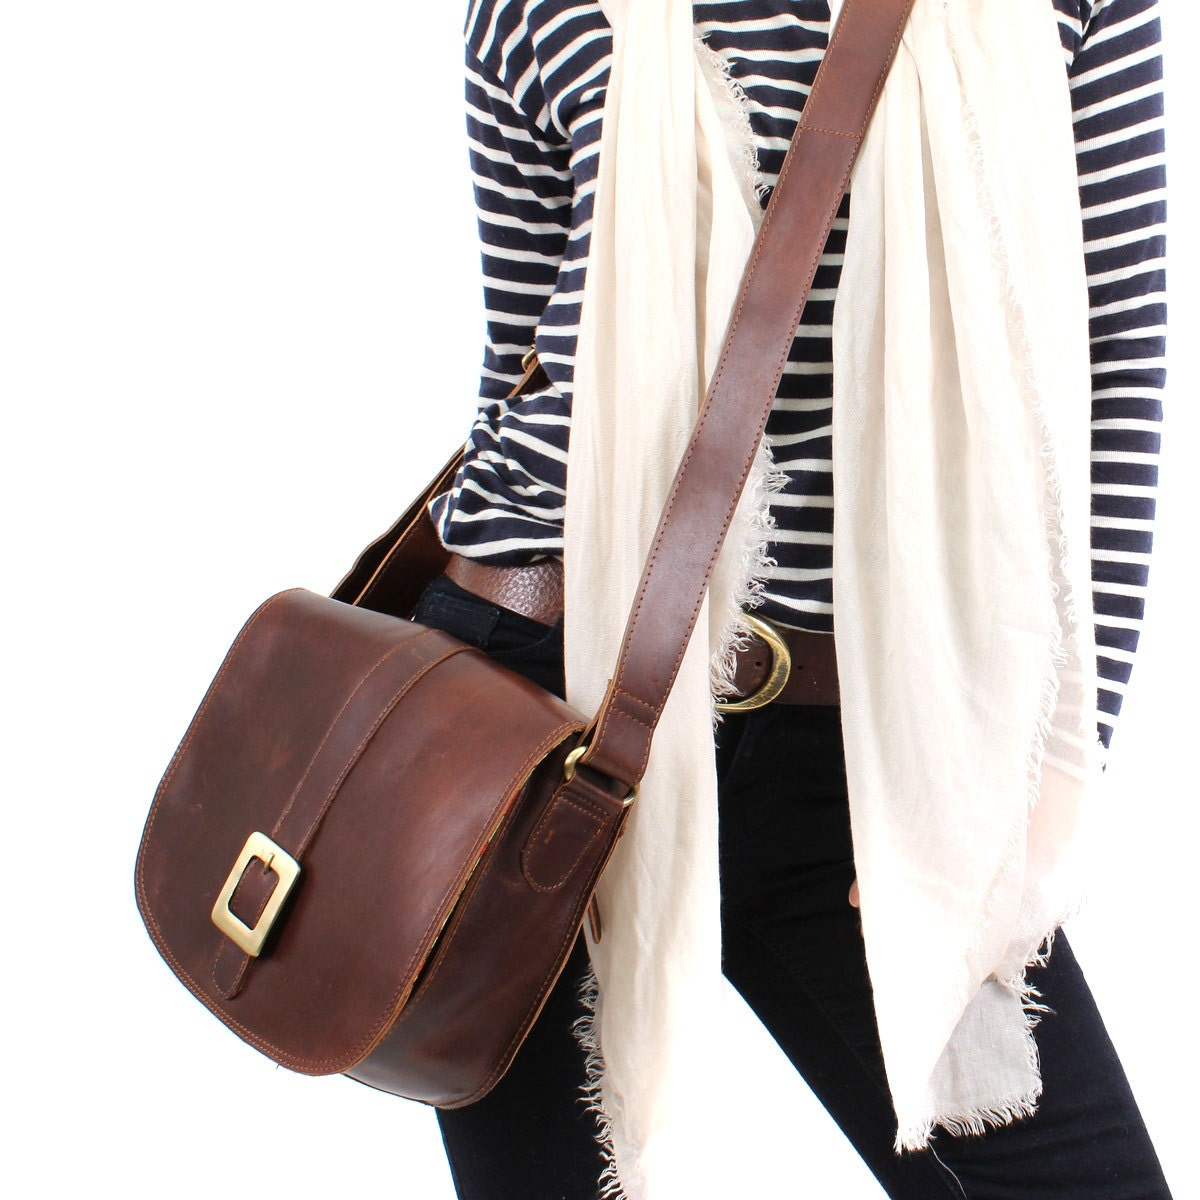 Leather Messenger Bag Cross Body Bag Handbag Brown